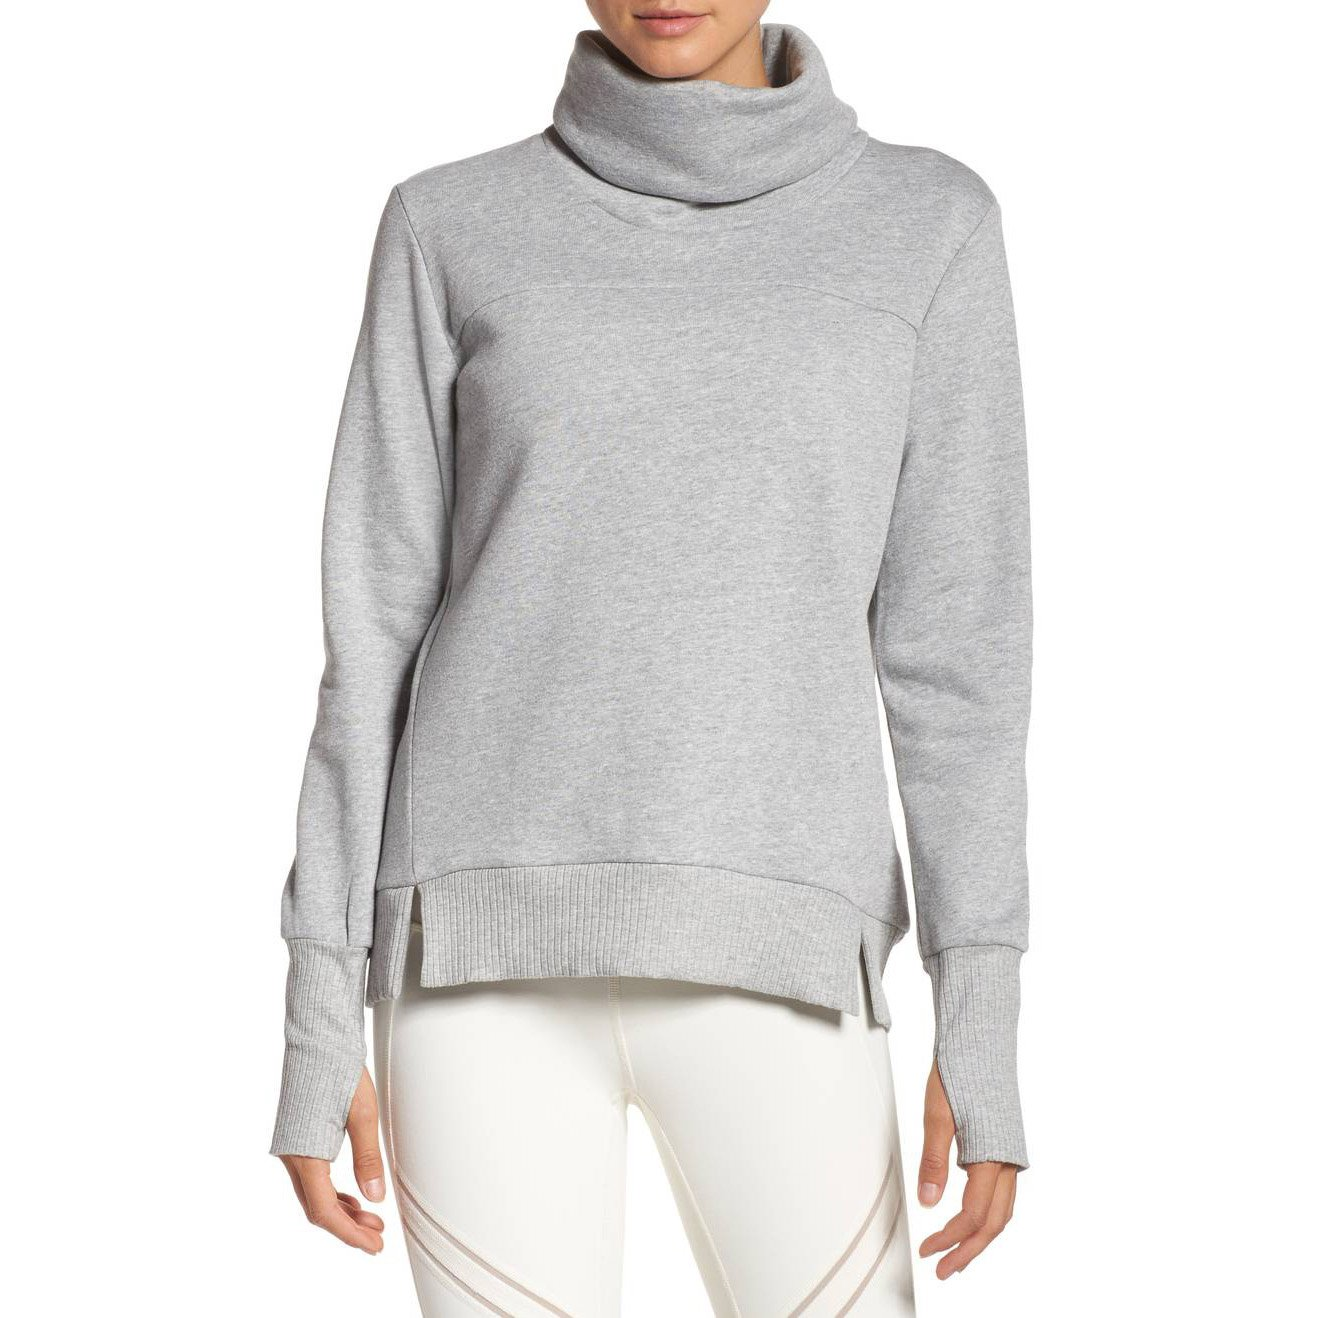 Alo funnel neck sweatshirt